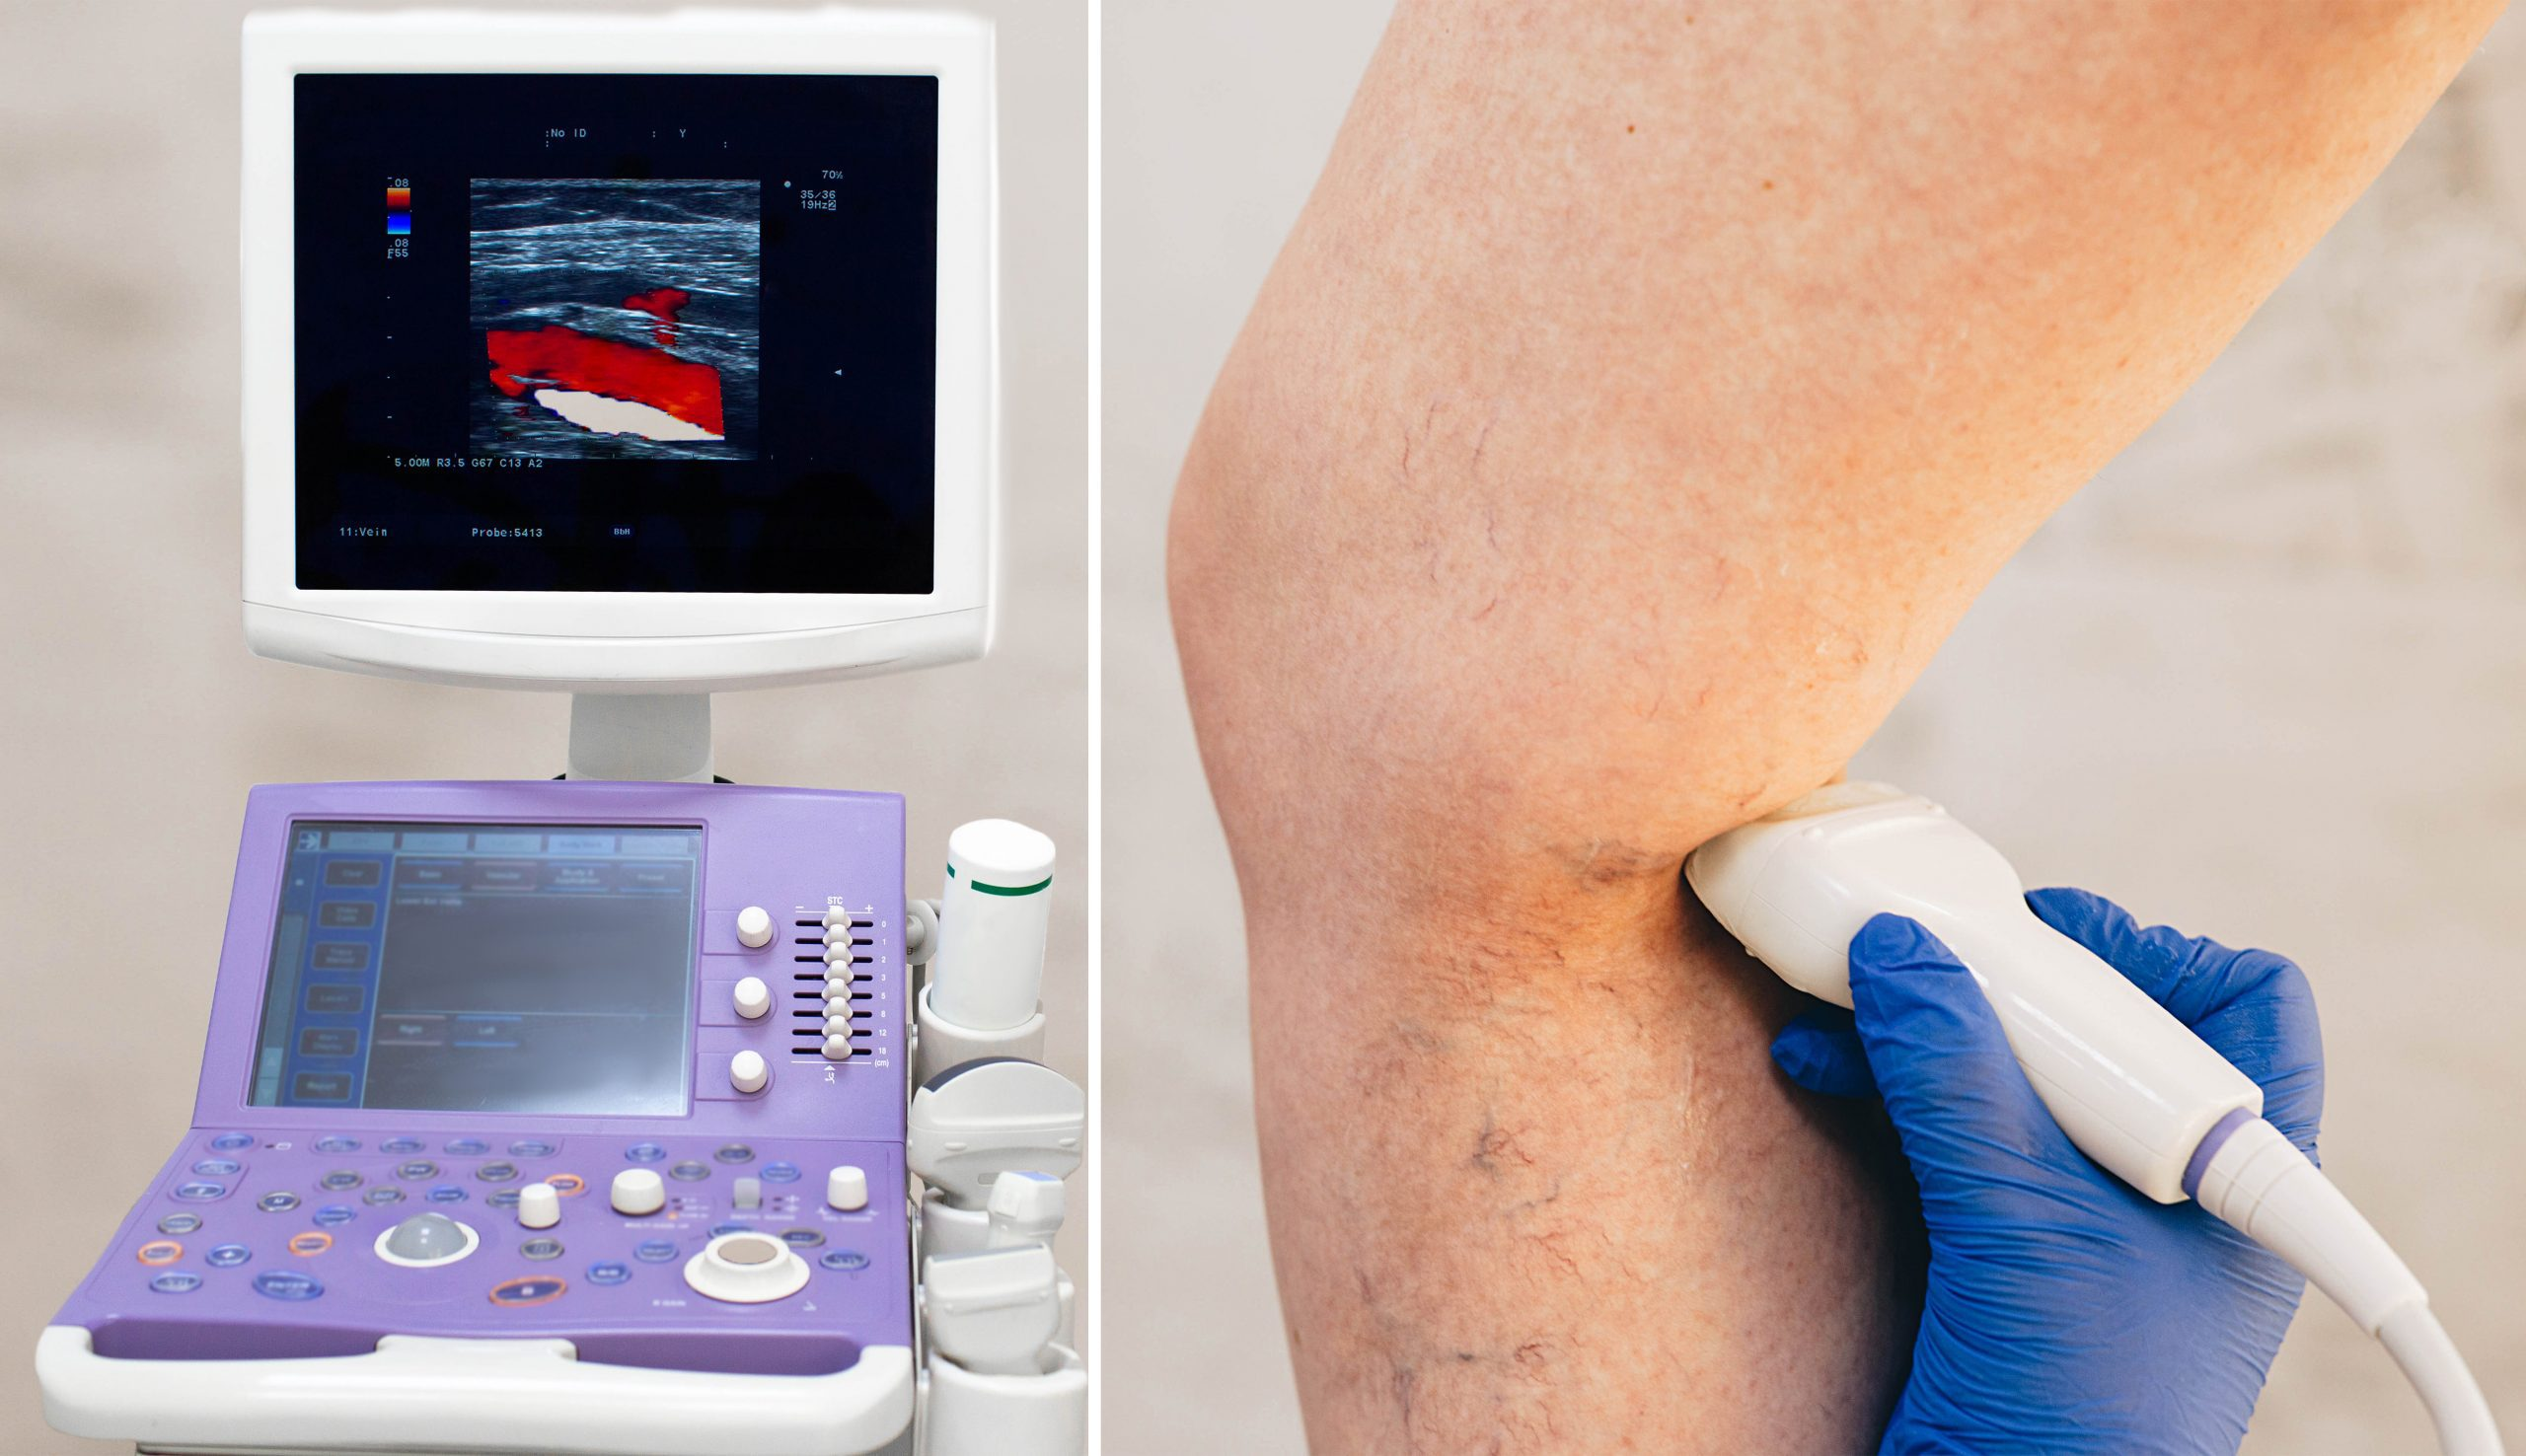 ultrasound exam can help determine is leg cramps are caused by venous insufficiency